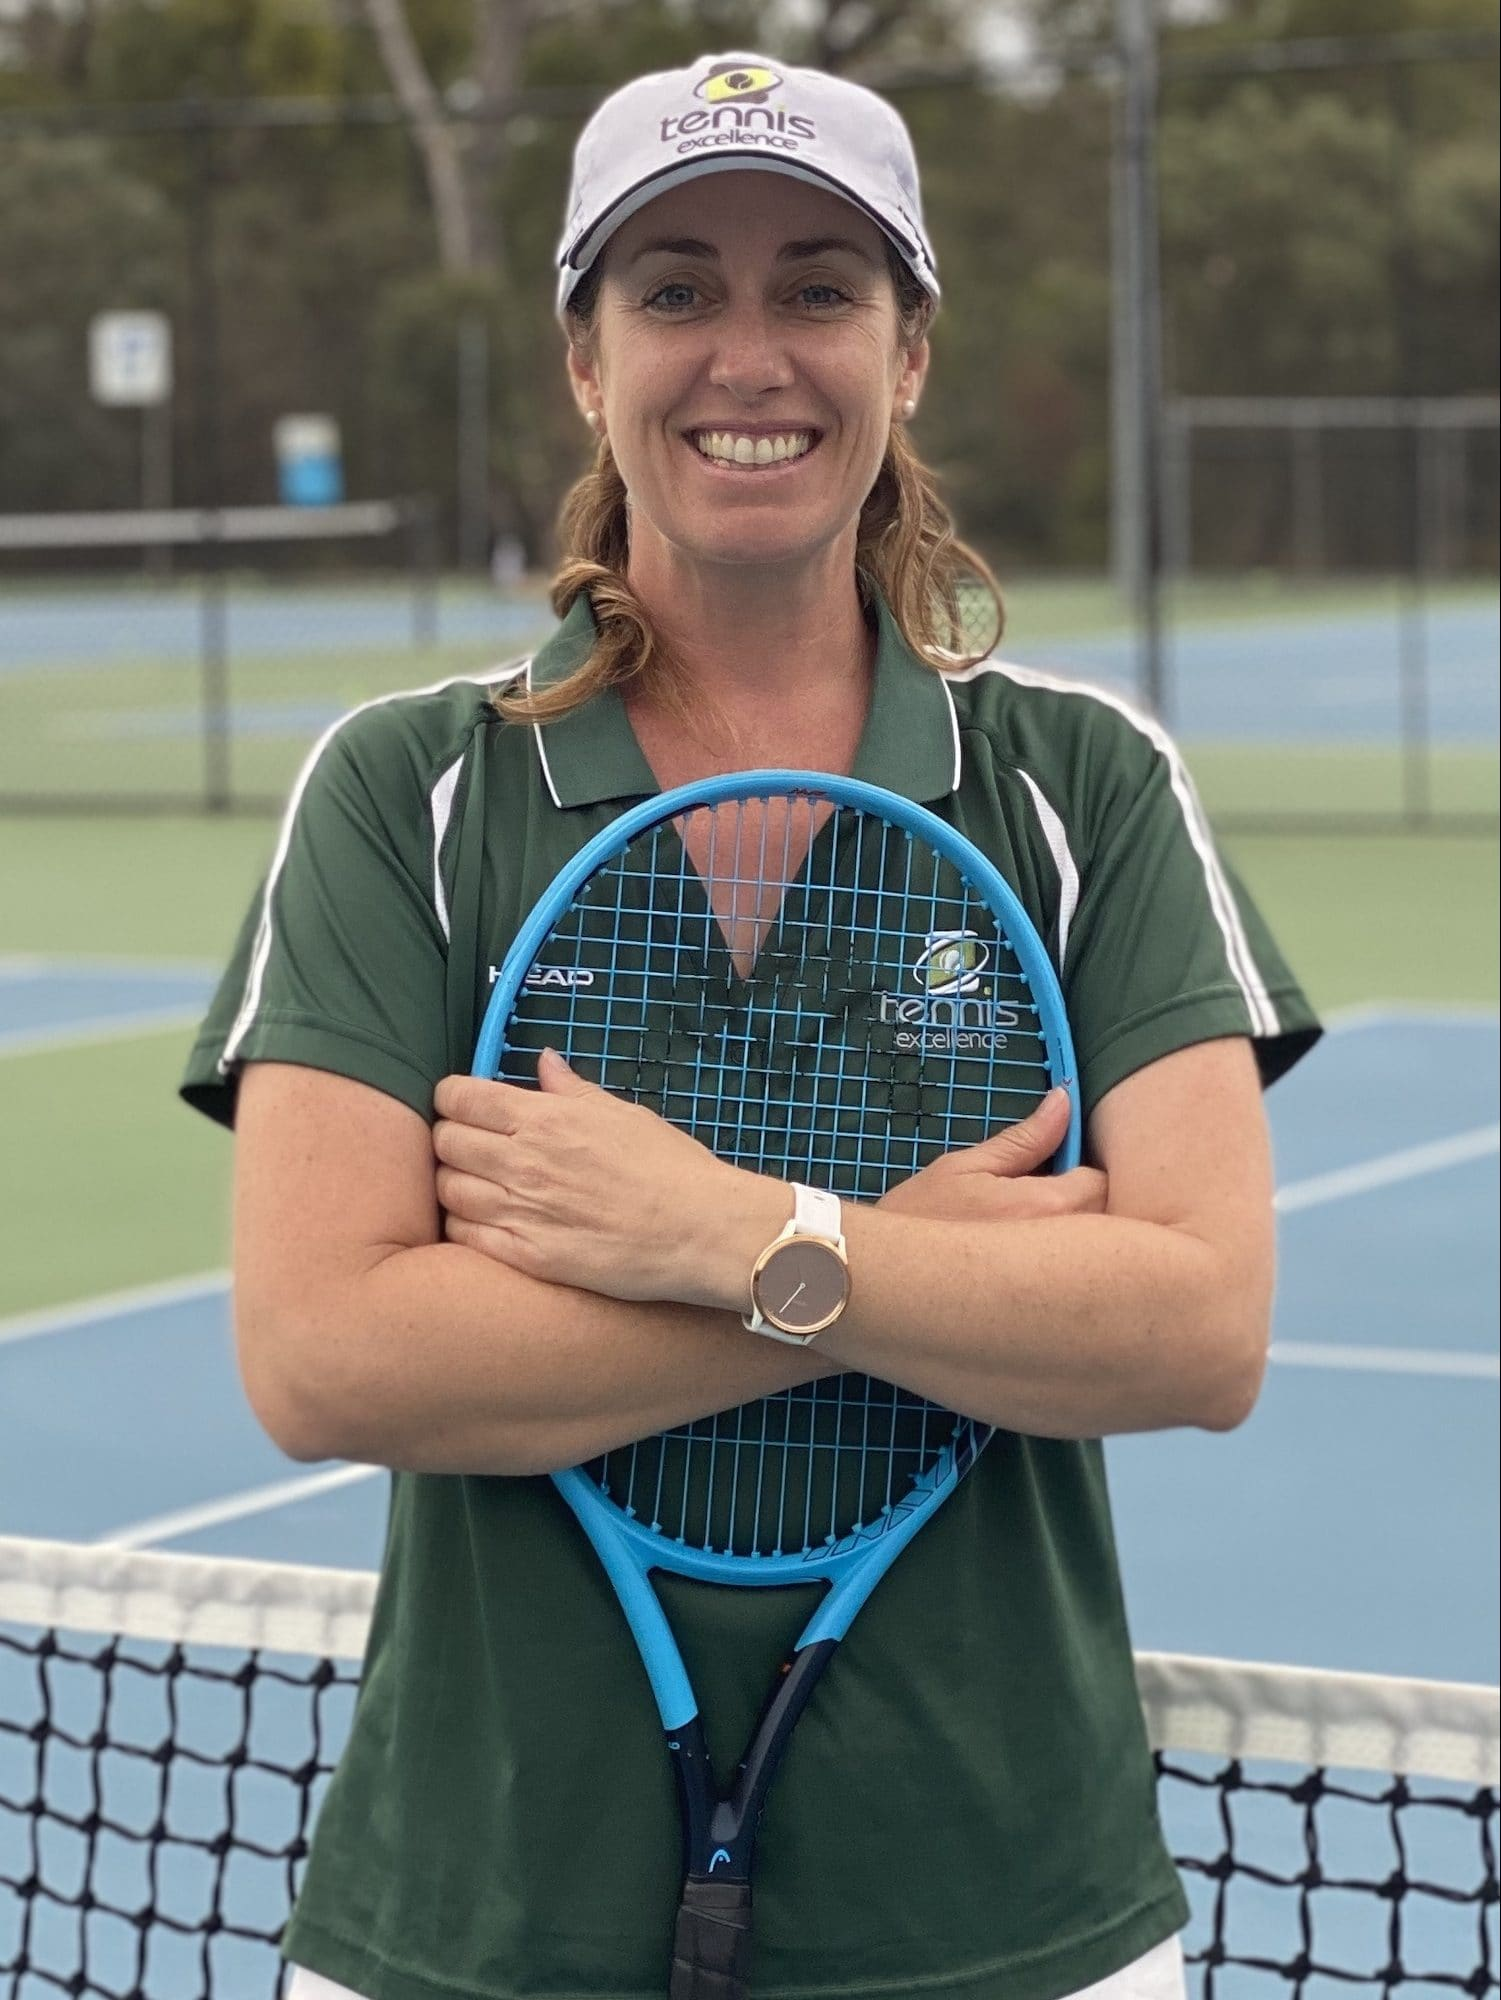 https://www.tennisexcellence.com.au/wp-content/uploads/2020/05/Coach_Shelle-Sewell-e1588672202833.jpeg